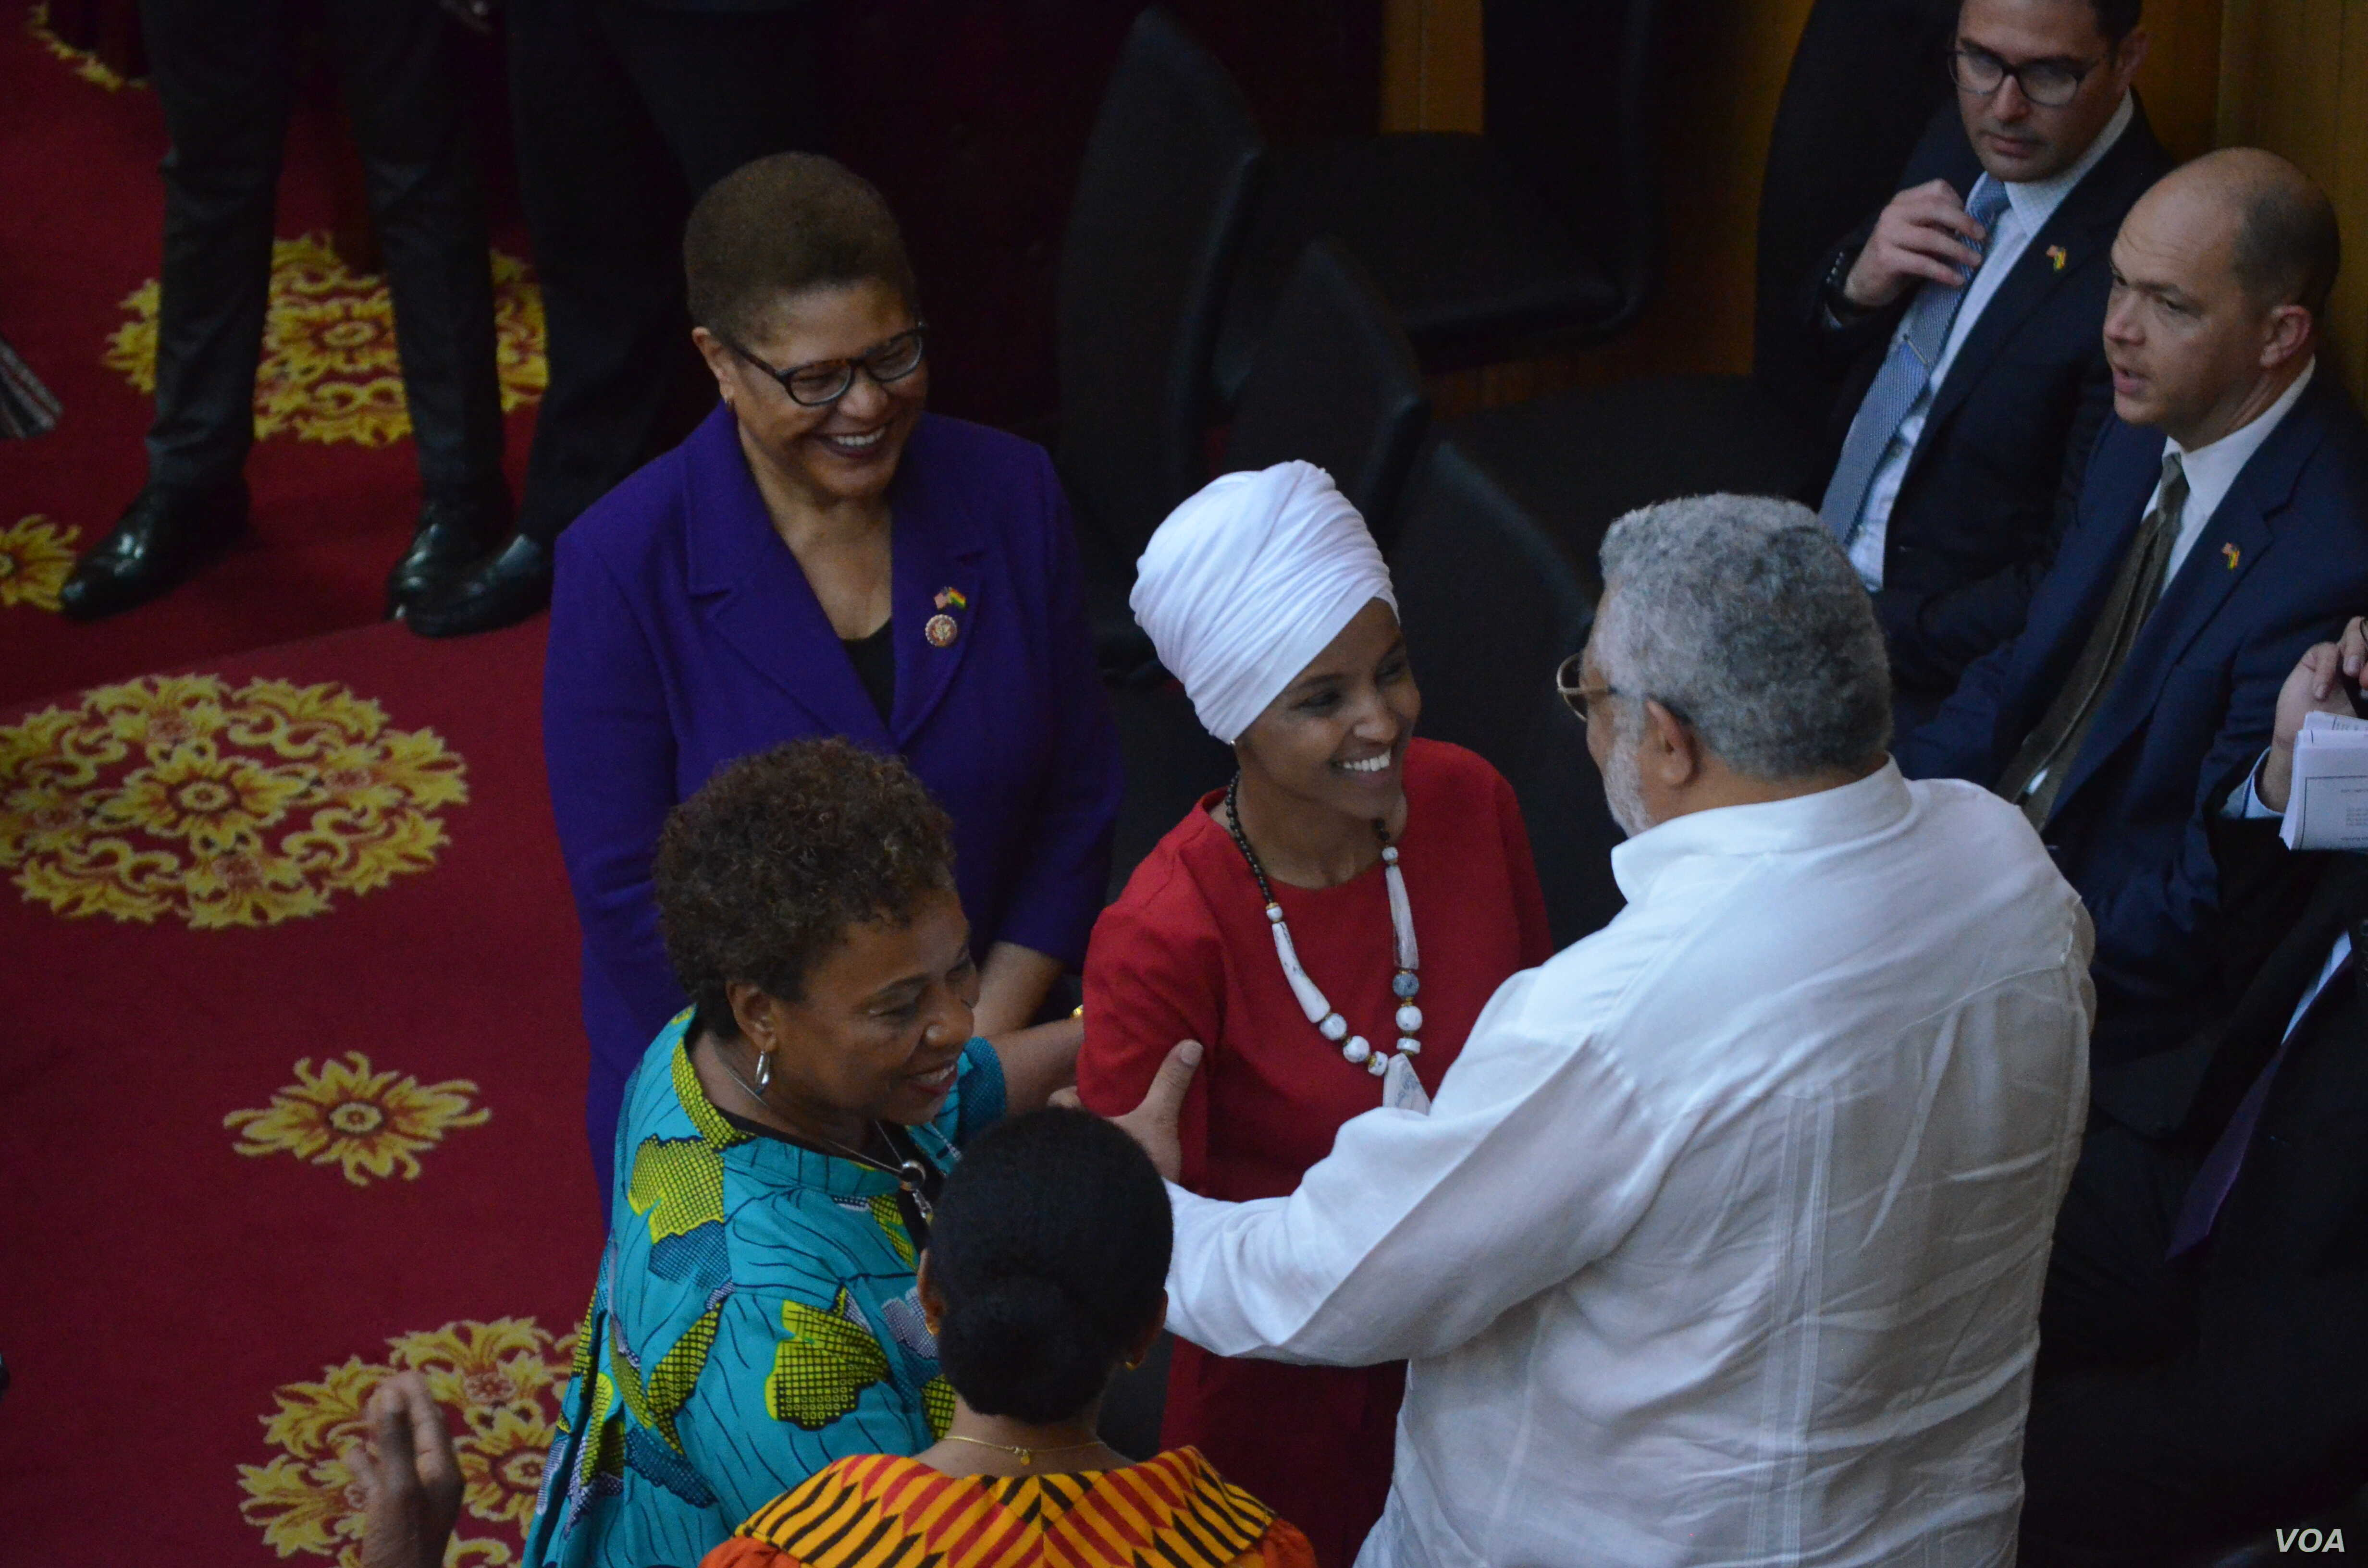 U.S. Representative Ilhan Omar is embraced by Ghana's former president, Jerry John Rawlings, at Ghana's parliament, July 31, 2019. (S. Knott/VOA)